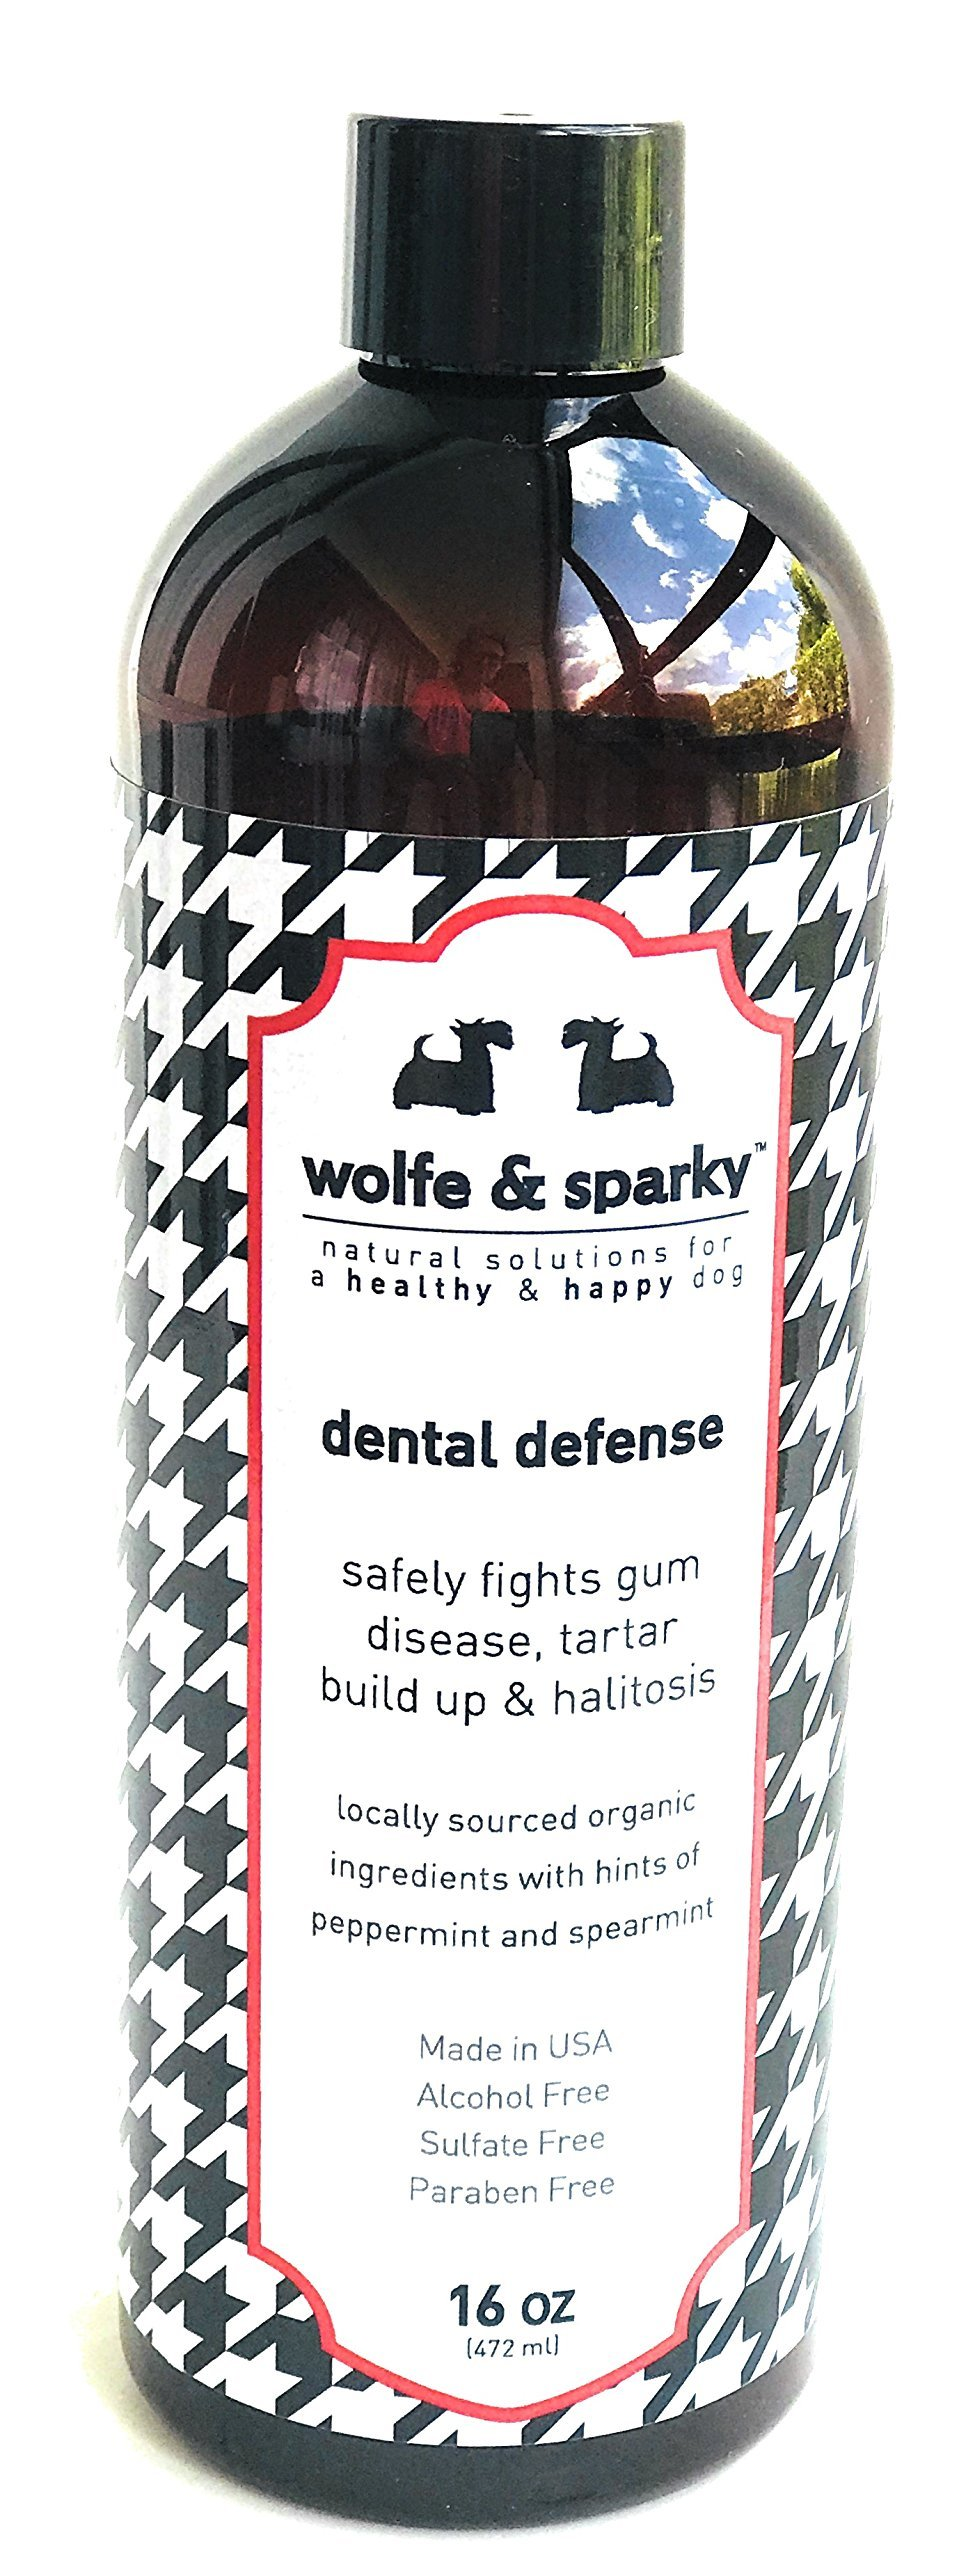 Wolfe & Sparky Organic Dental Defense A Natural Solution to Your Dog's Dental Health (16oz)